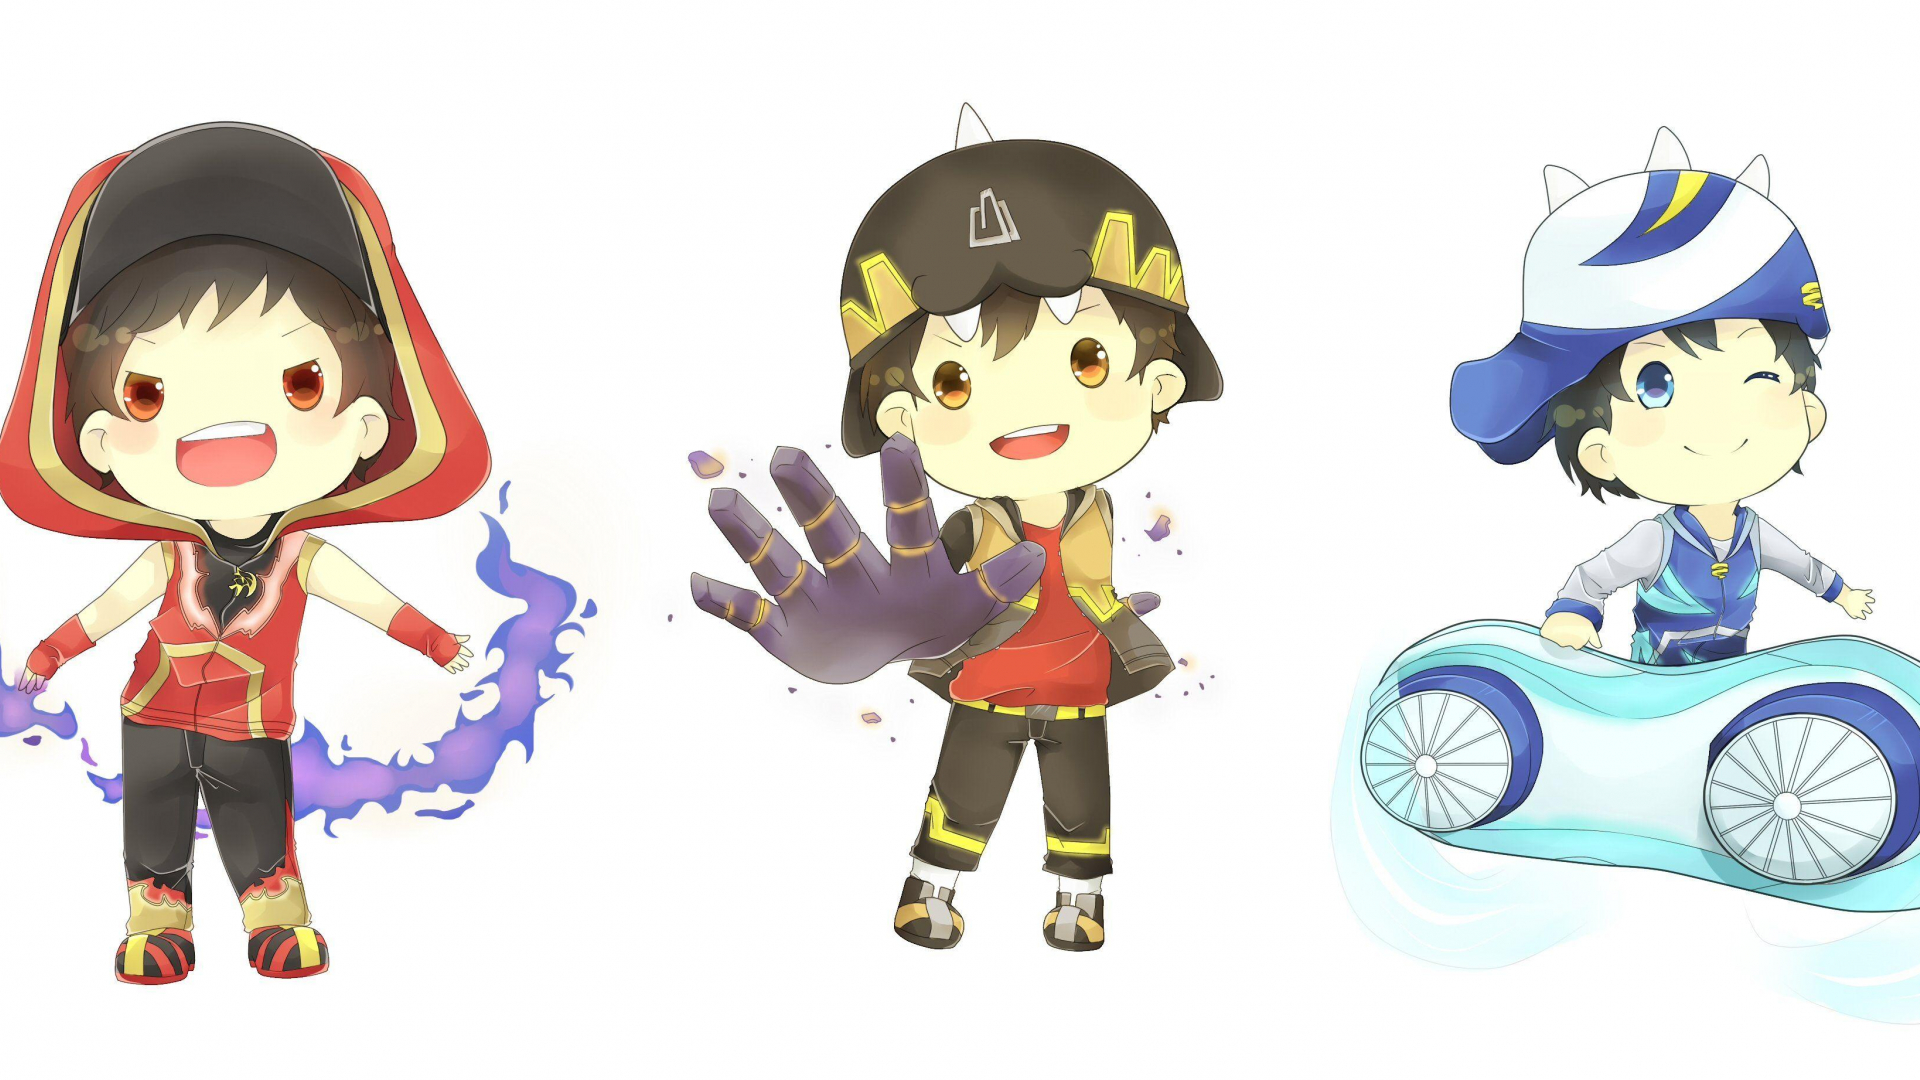 Free BoBoiBoy Wallpapers [6617x1843] For Your